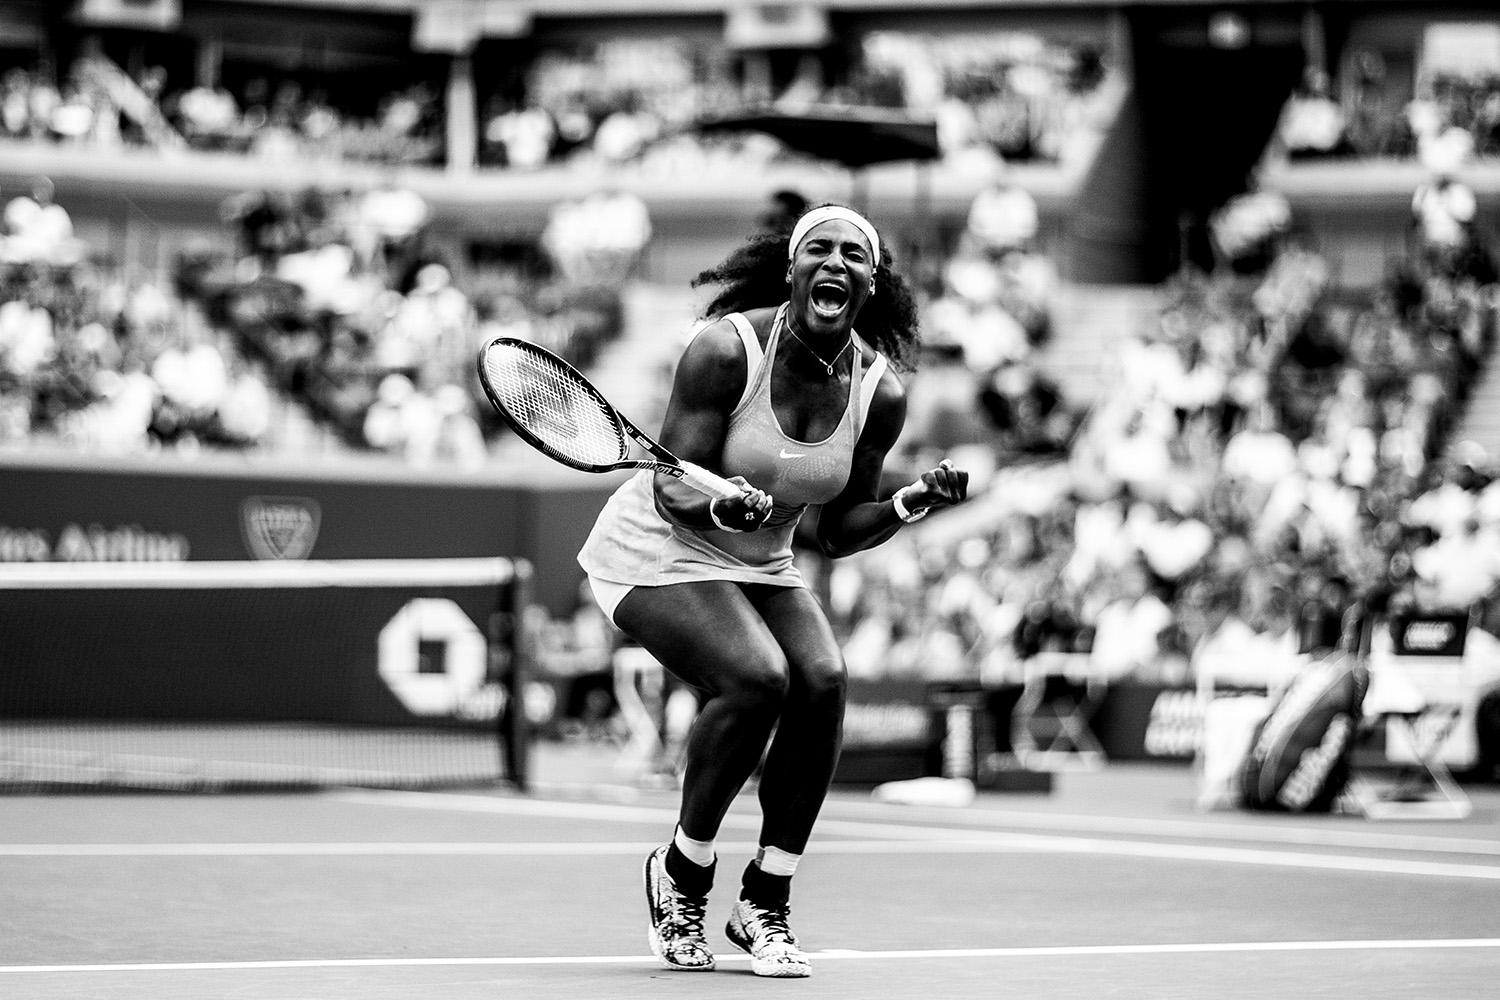 ESPN: Serena Williams